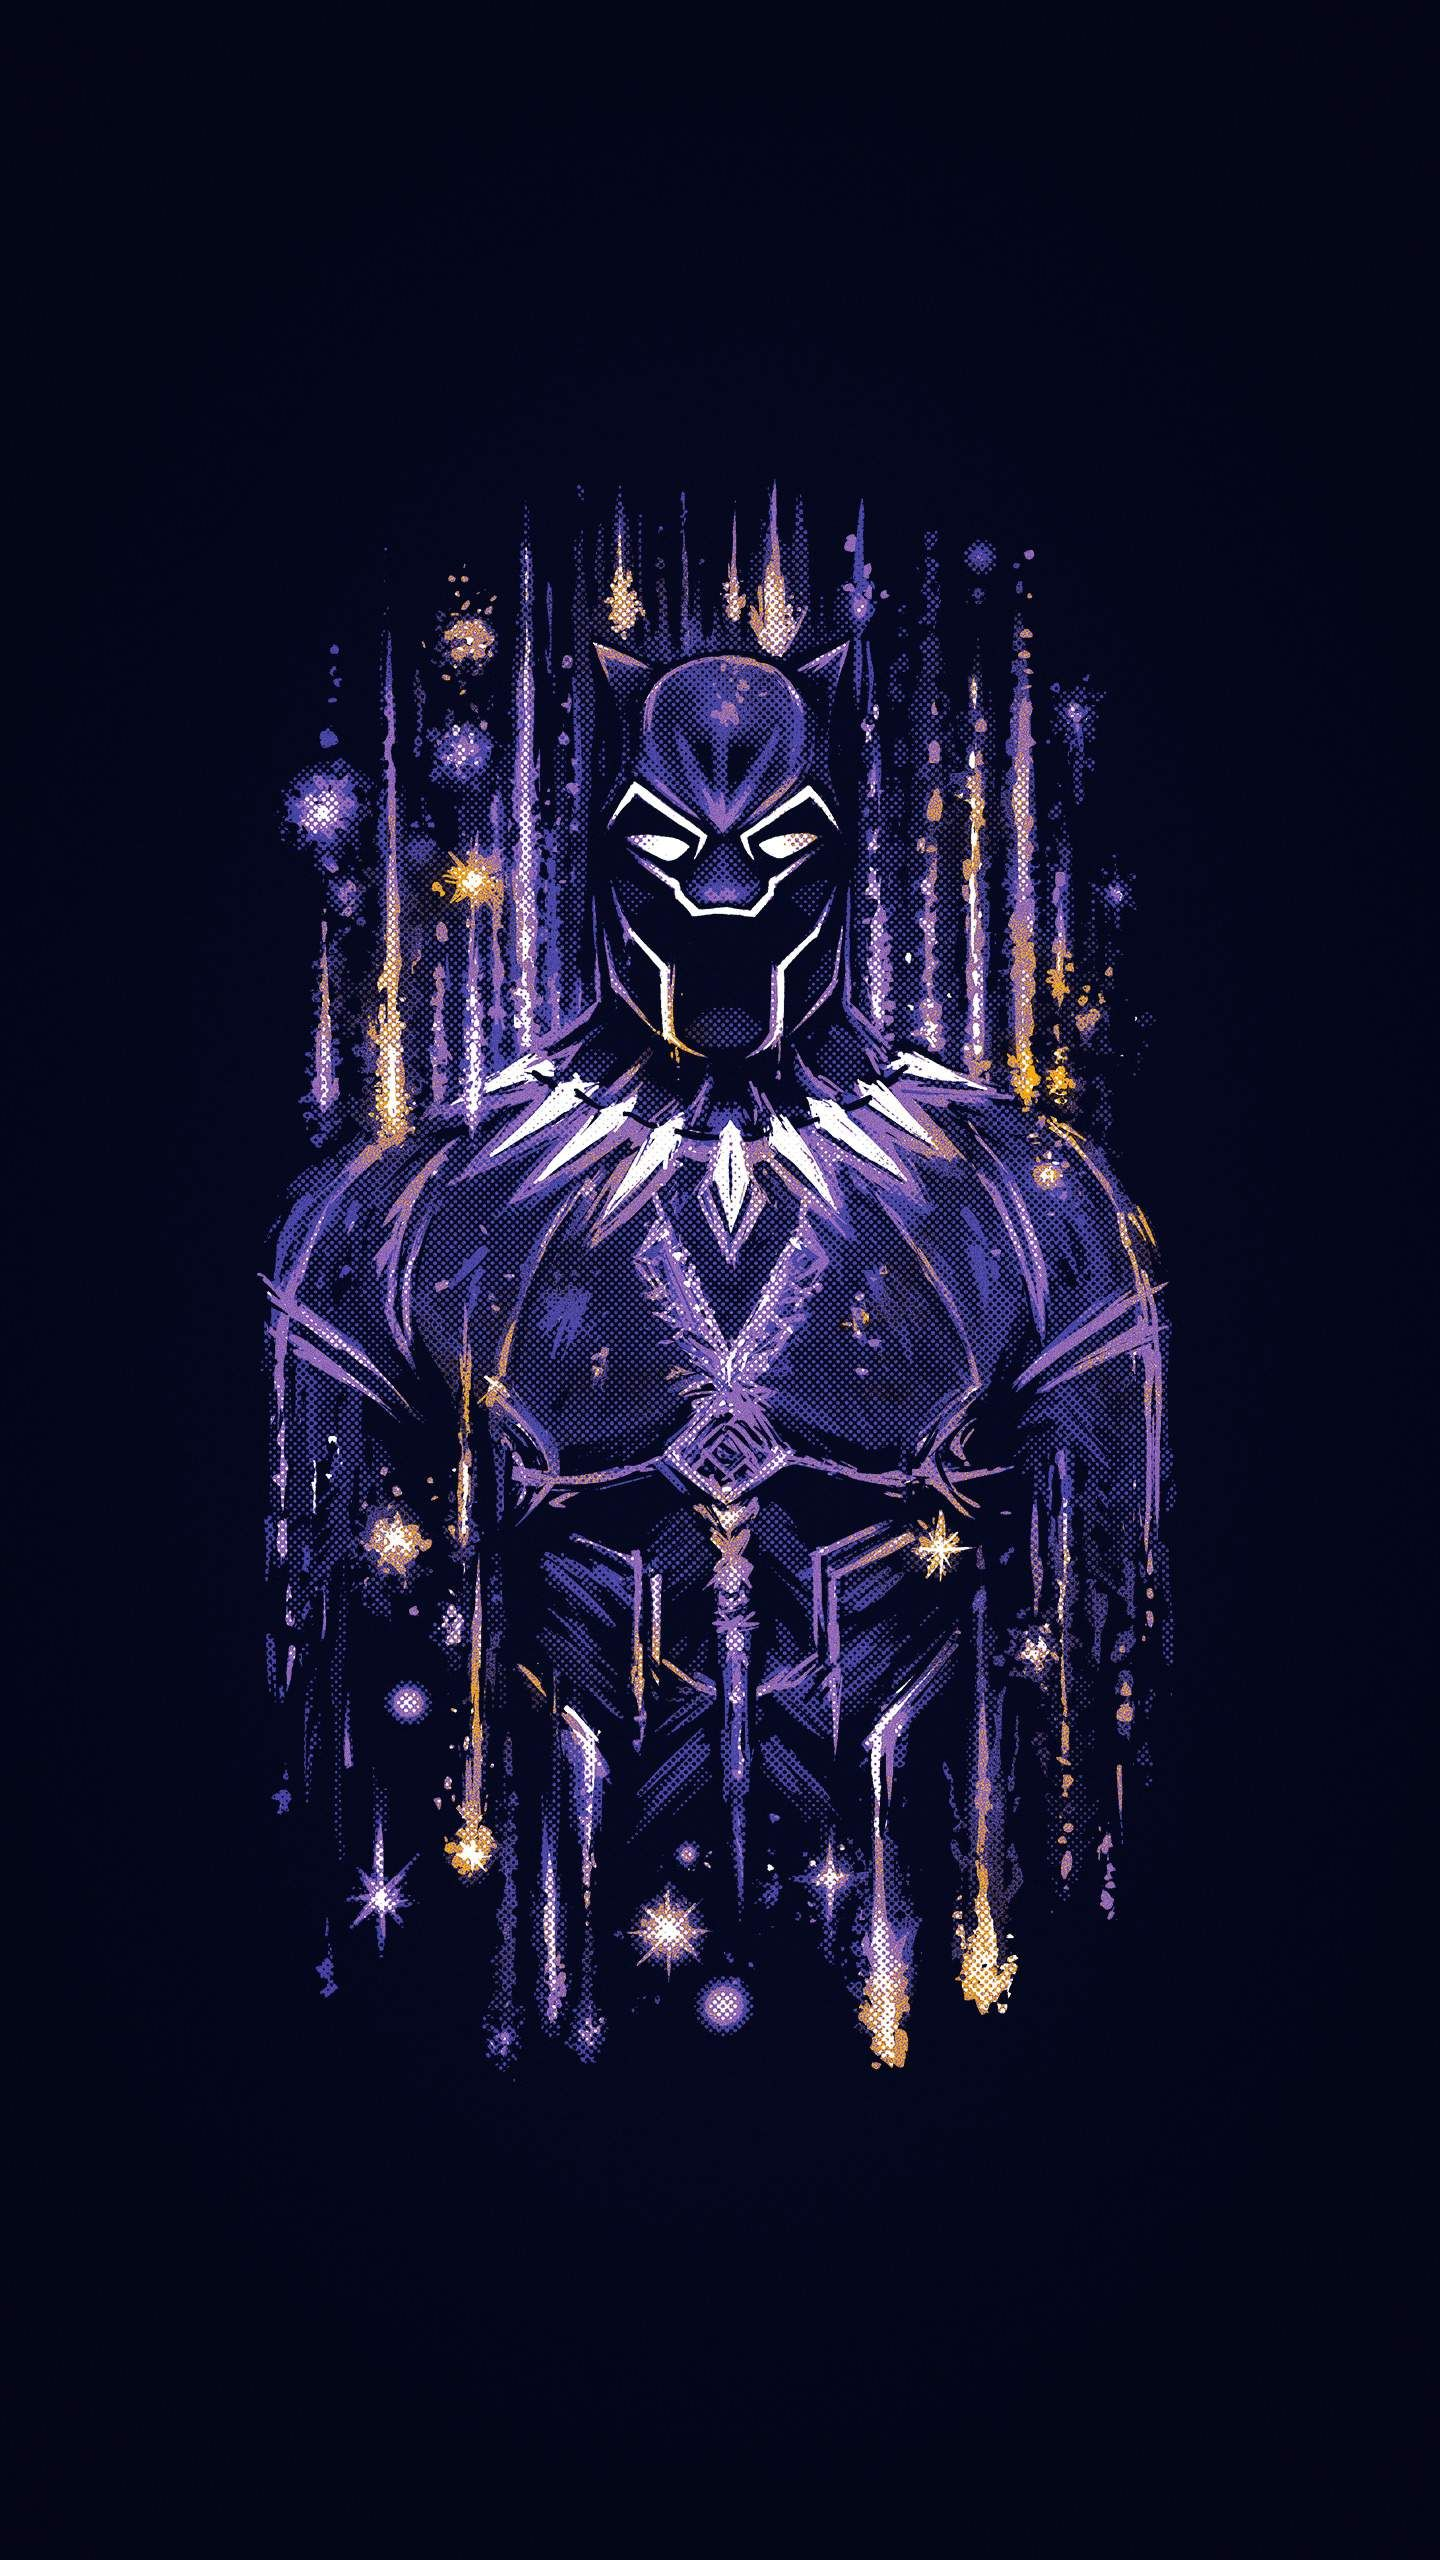 Iphone Wallpapers For Iphone 8 Iphone 8 Plus Iphone 6s Iphone 6s Plus Iphone X And Ipod Touch High Quality Marvel Wallpaper Black Panther Art Black Panther